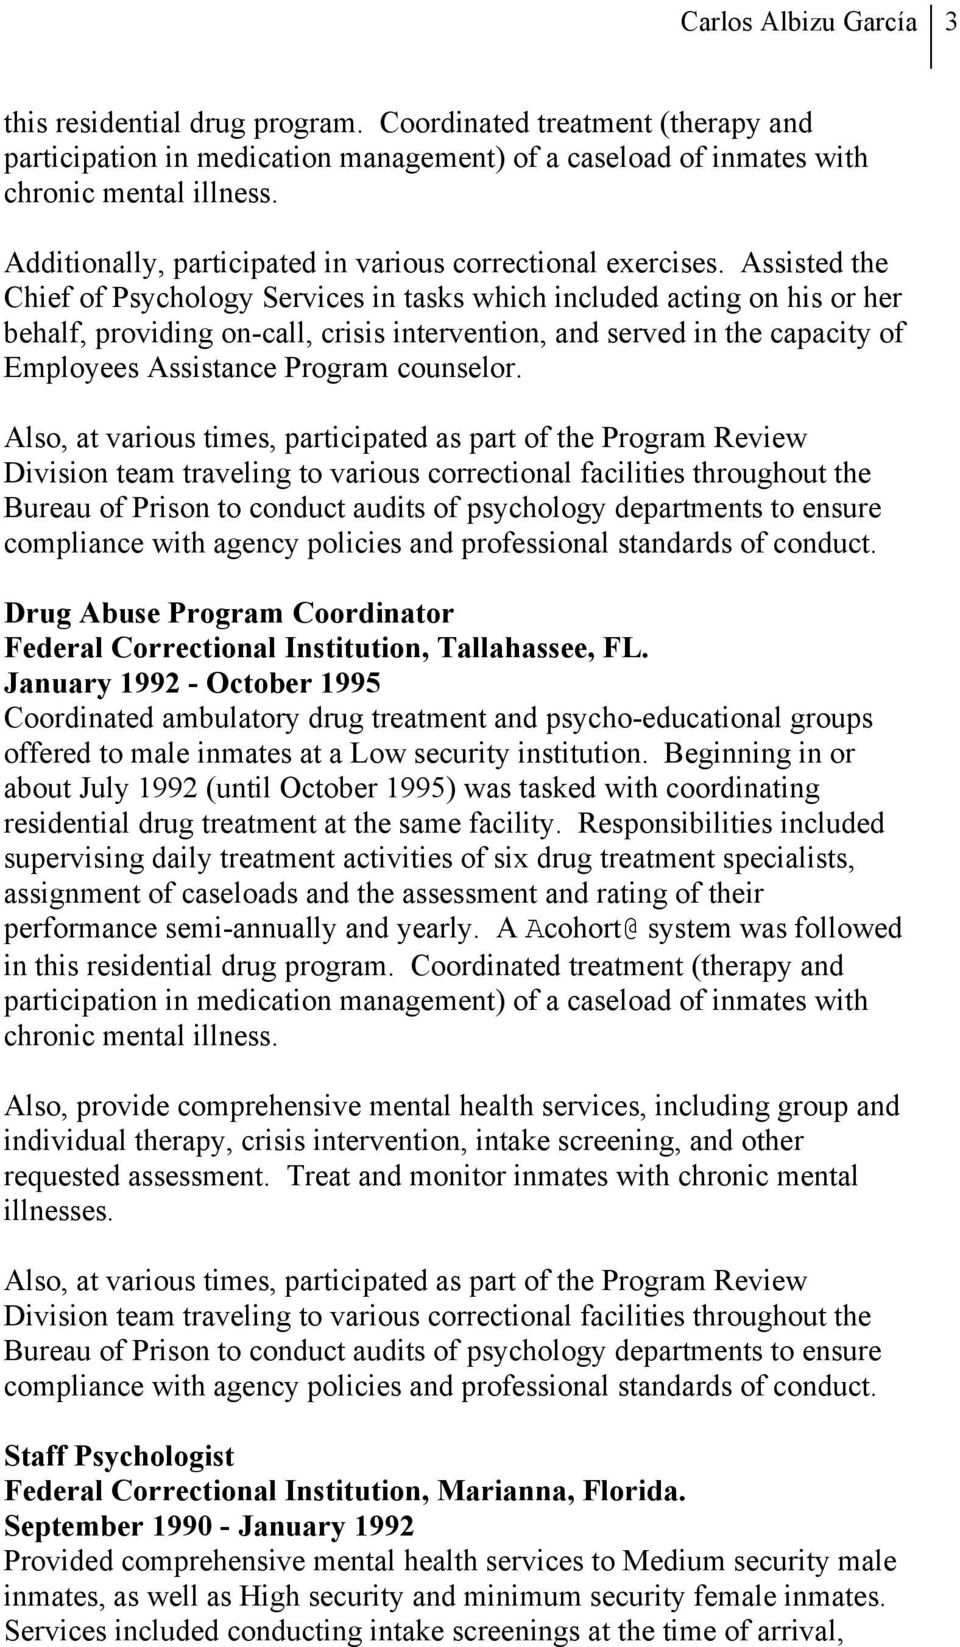 Assisted the Chief of Psychology Services in tasks which included acting on his or her behalf, providing on-call, crisis intervention, and served in the capacity of Employees Assistance Program